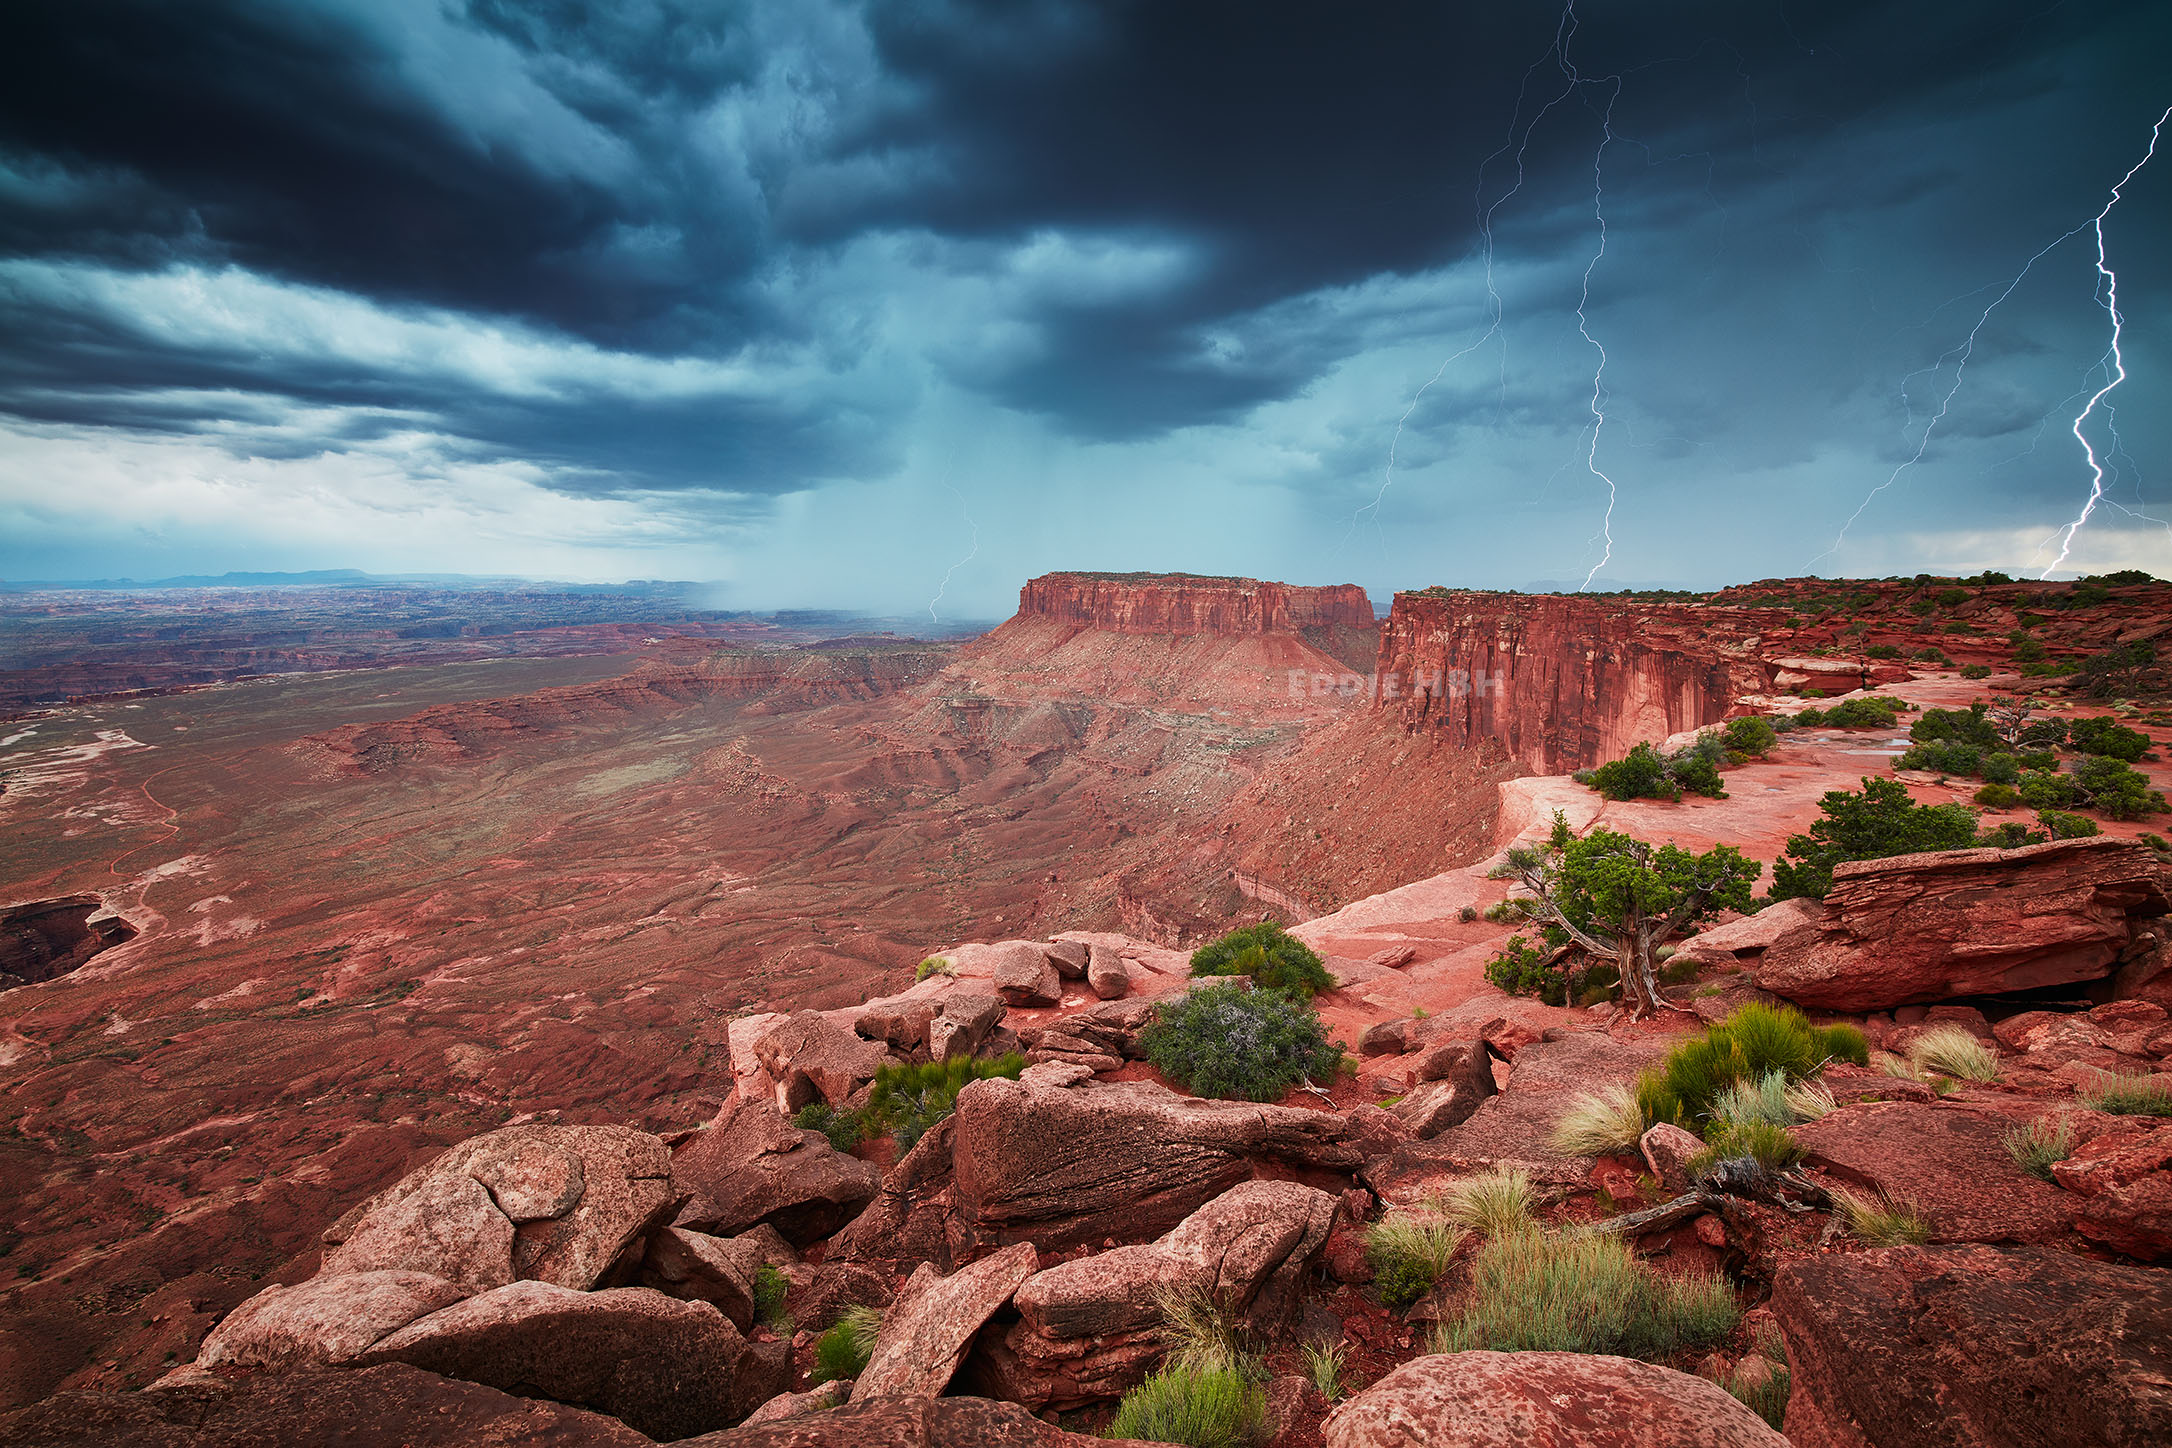 Thunderstorm over Canyon Lands